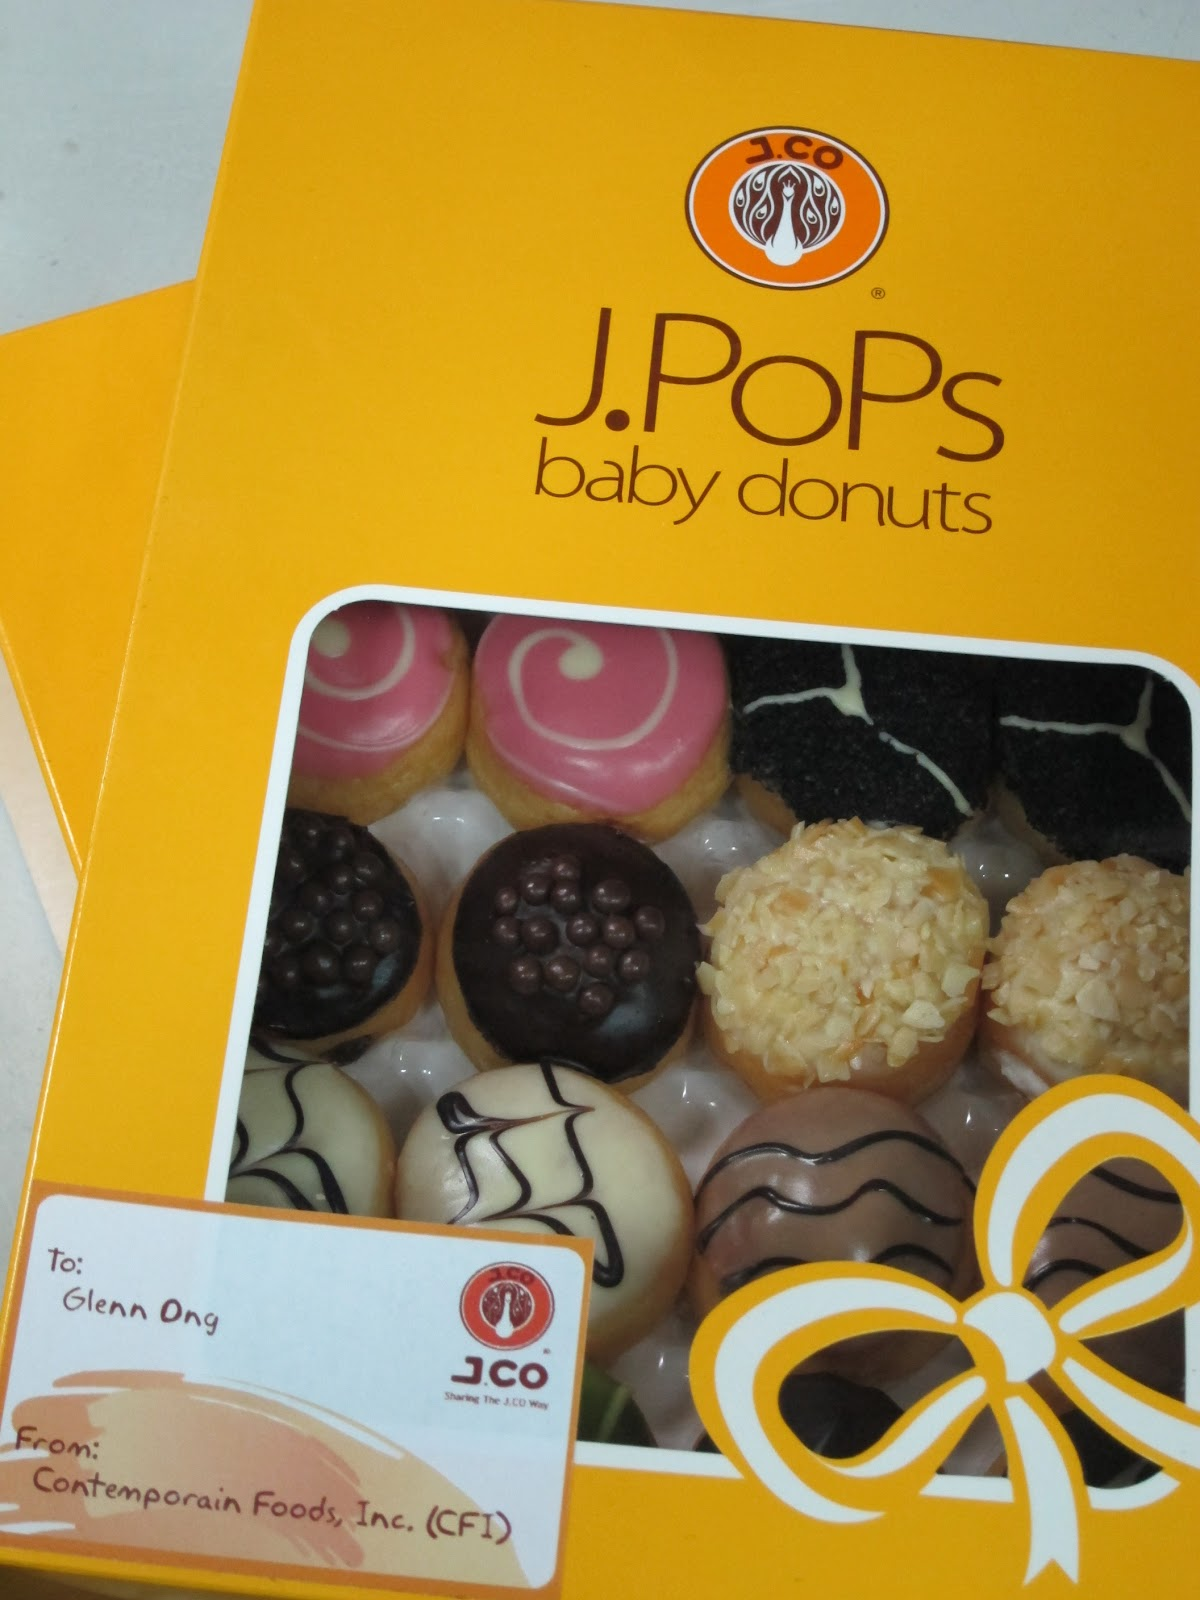 J.POPS Baby Donuts from J.CO Donuts and Coffee... Soon ...